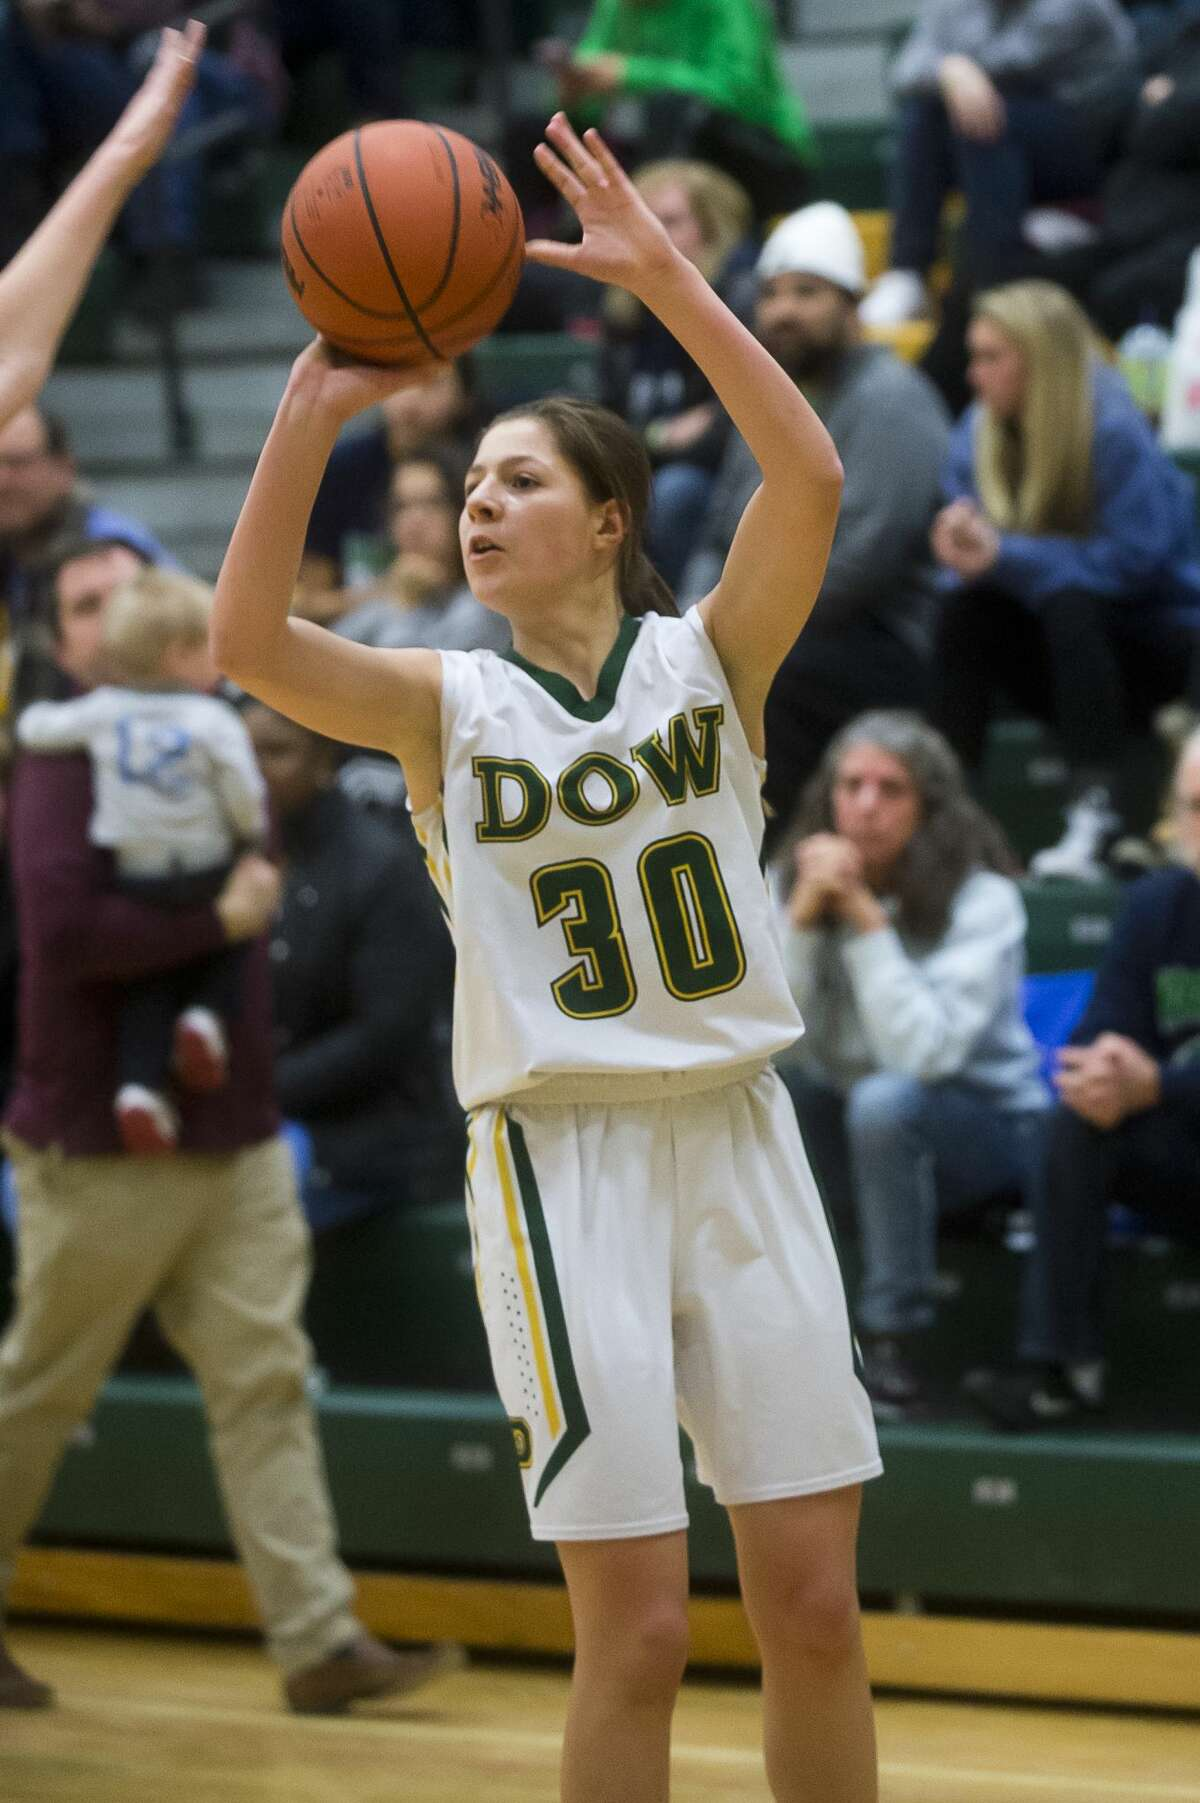 Dow freshman Katelyn Murray takes a shot during the Chargers' game against Saginaw Heritage on Tuesday, Jan. 16, 2018 at H. H. Dow High School. (Katy Kildee/kkildee@mdn.net)